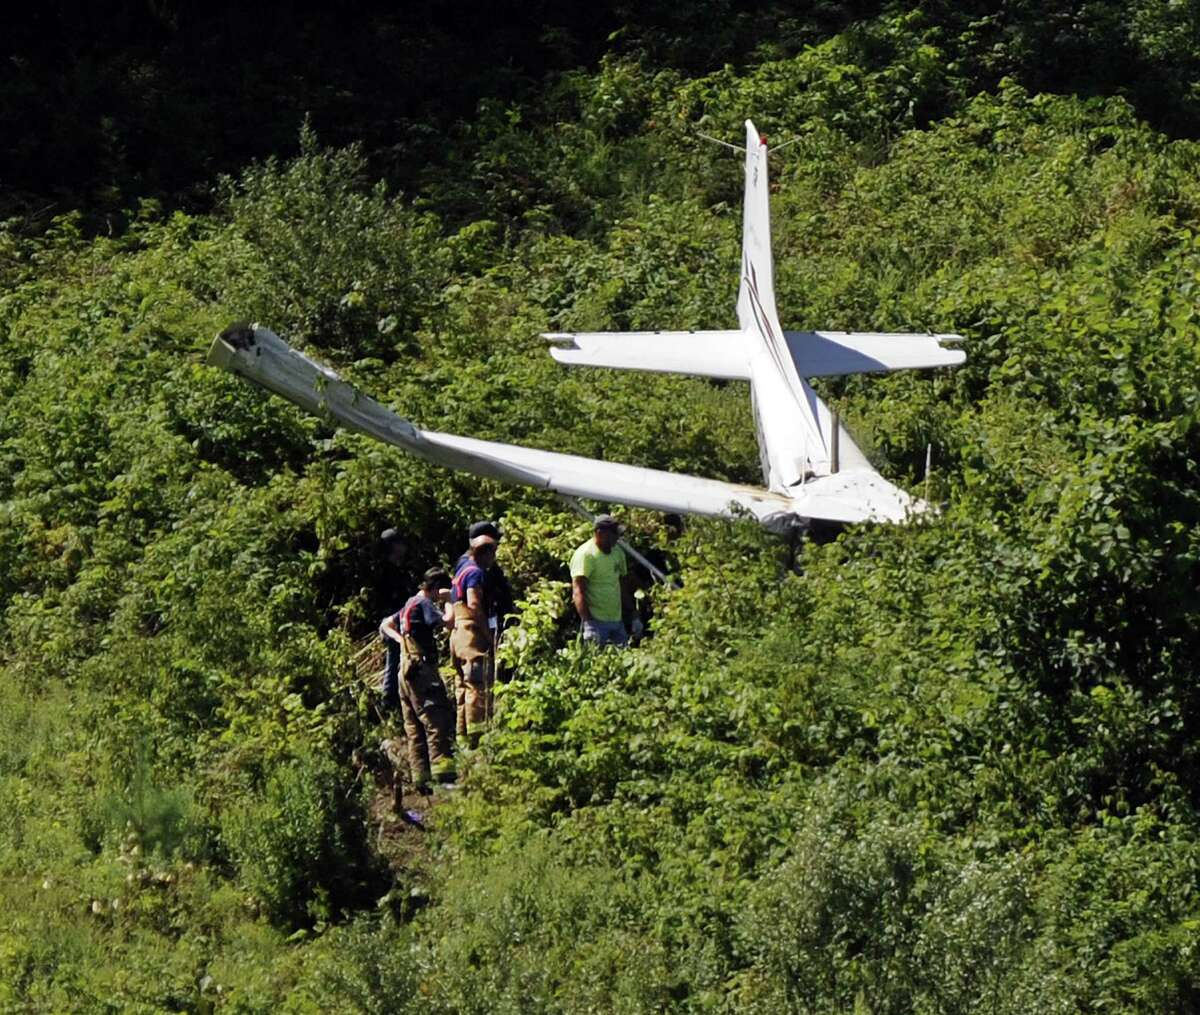 Three people are injured after a plane crashed about a mile from Danbury Airport Sunday morning, police confirmed. The crash occured off Miry Brook Road near the Dog Park around 10:30 a.m, July 30, 2017